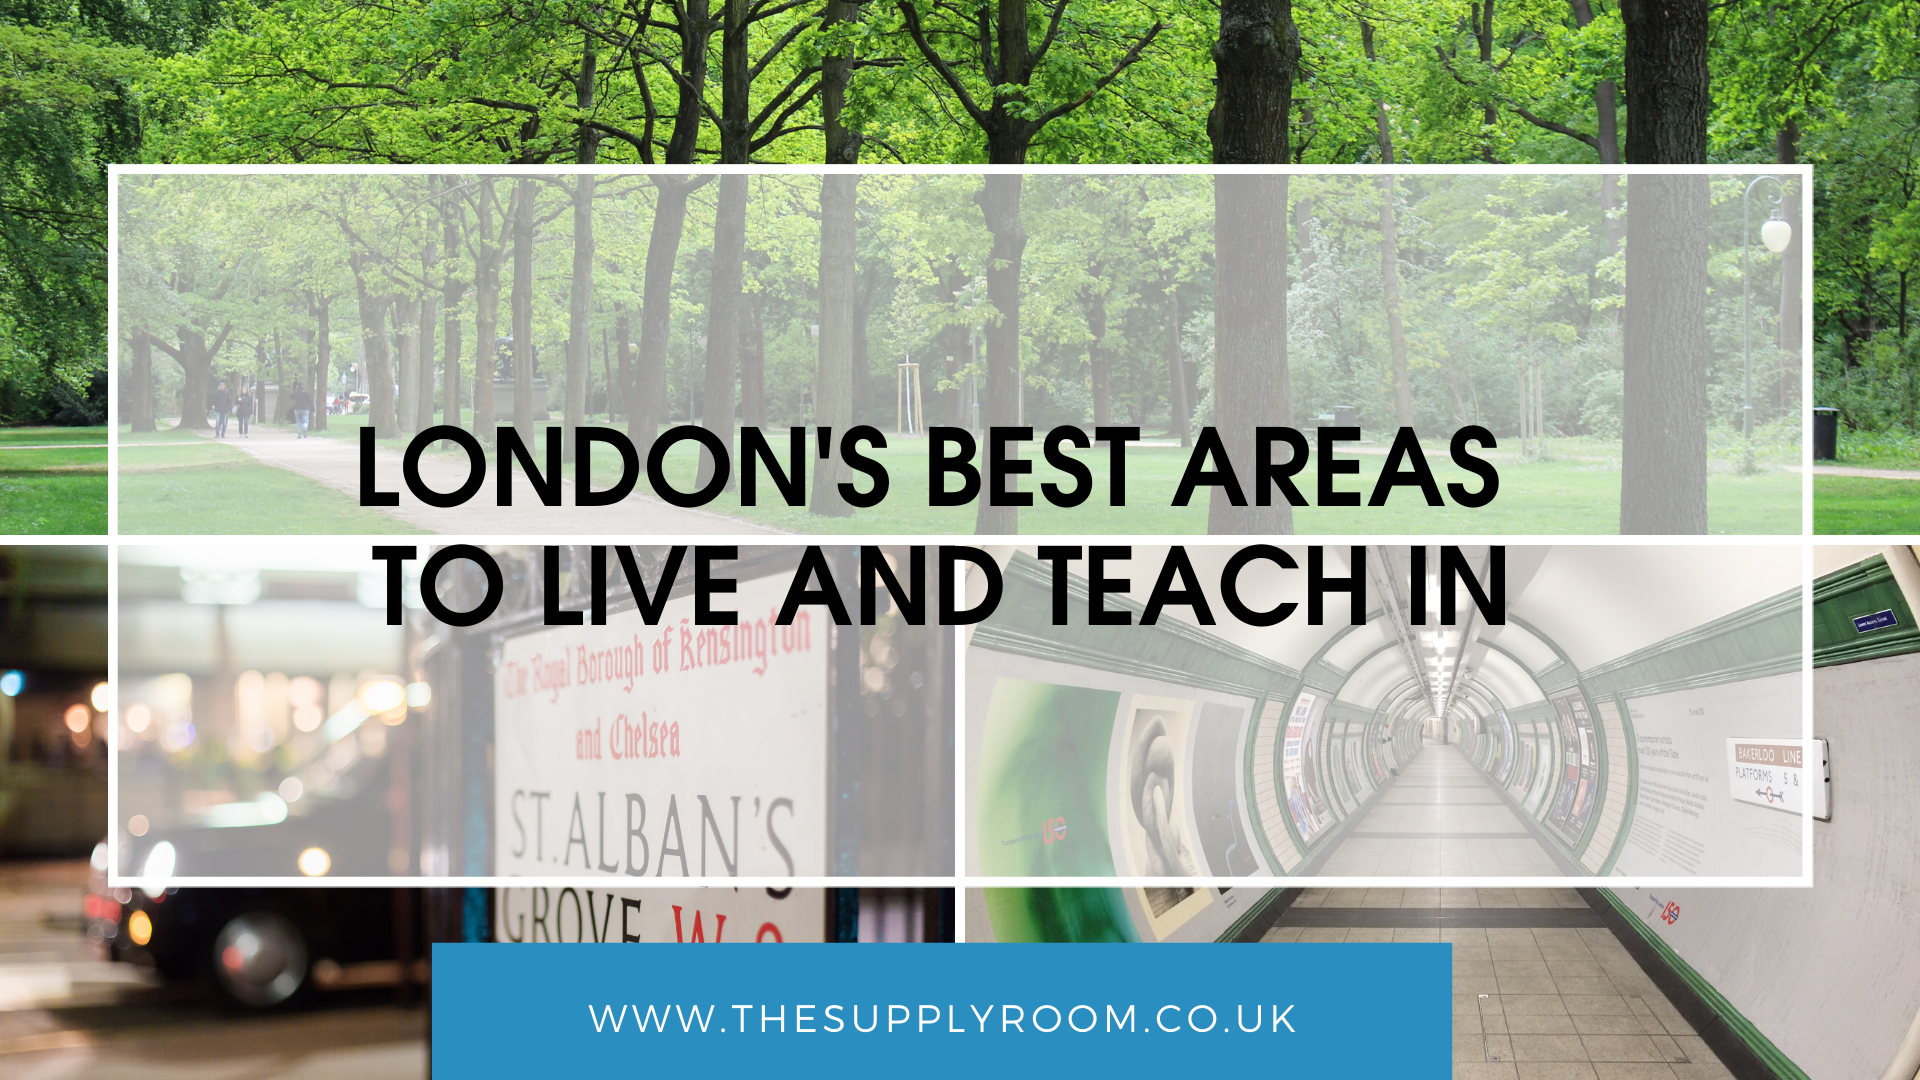 London's Best Areas to Live and Teach in